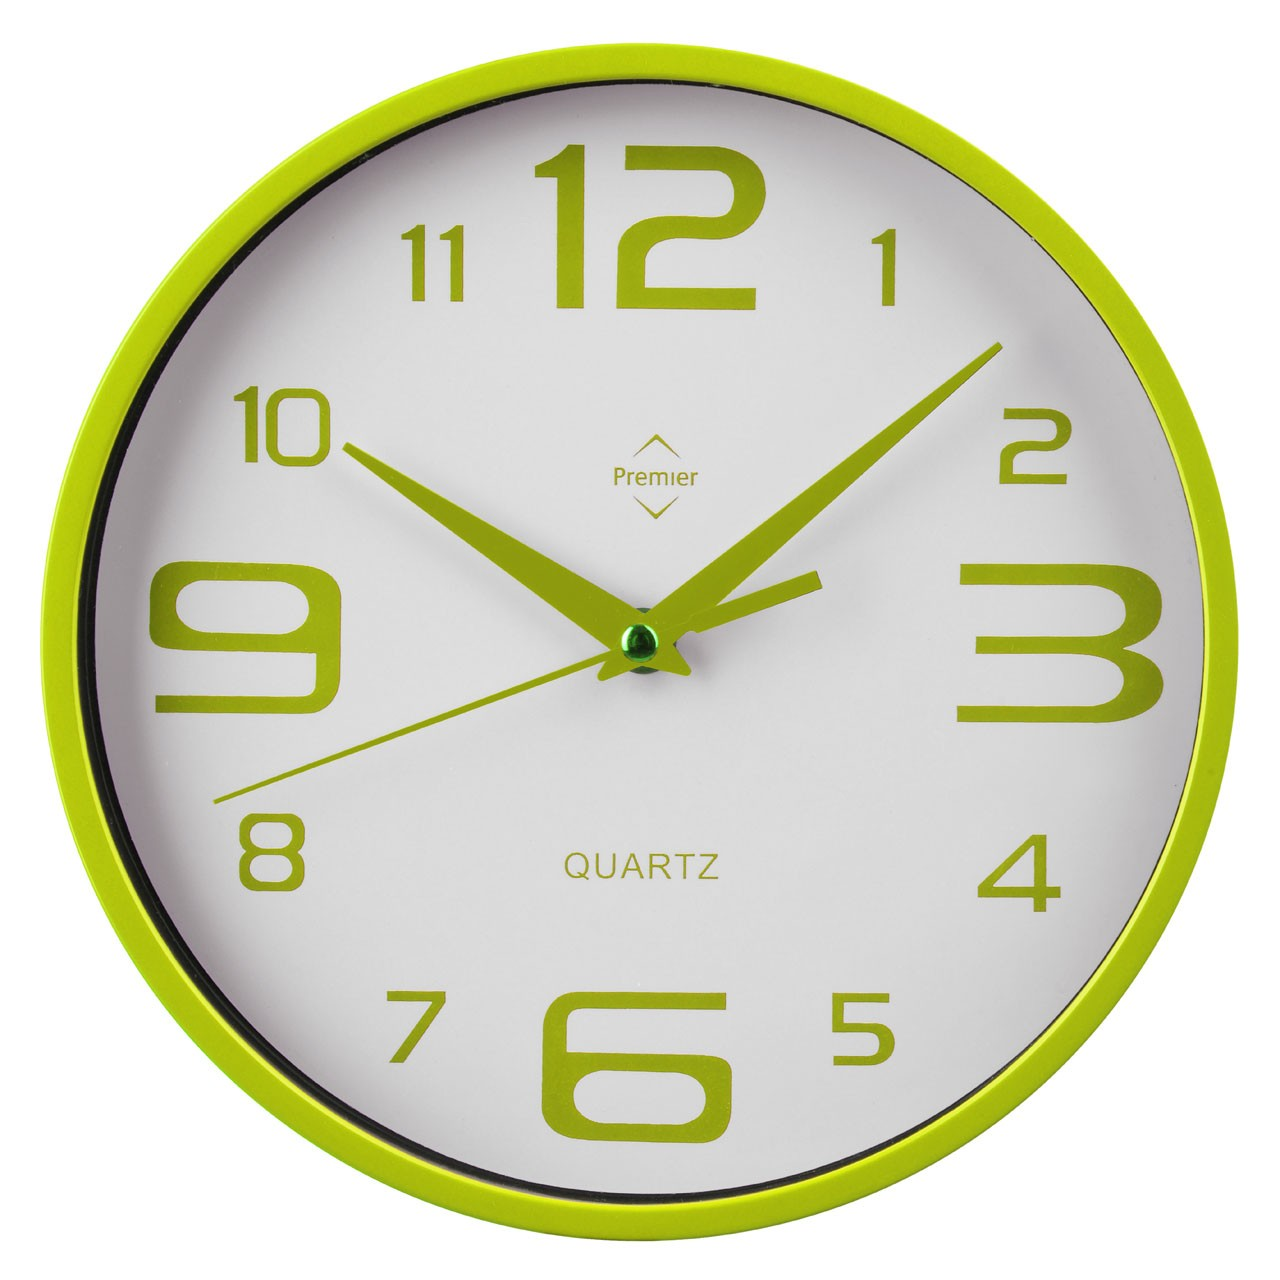 Prime Furnishing Wall Clock - Lime Green, White Plastic Frame